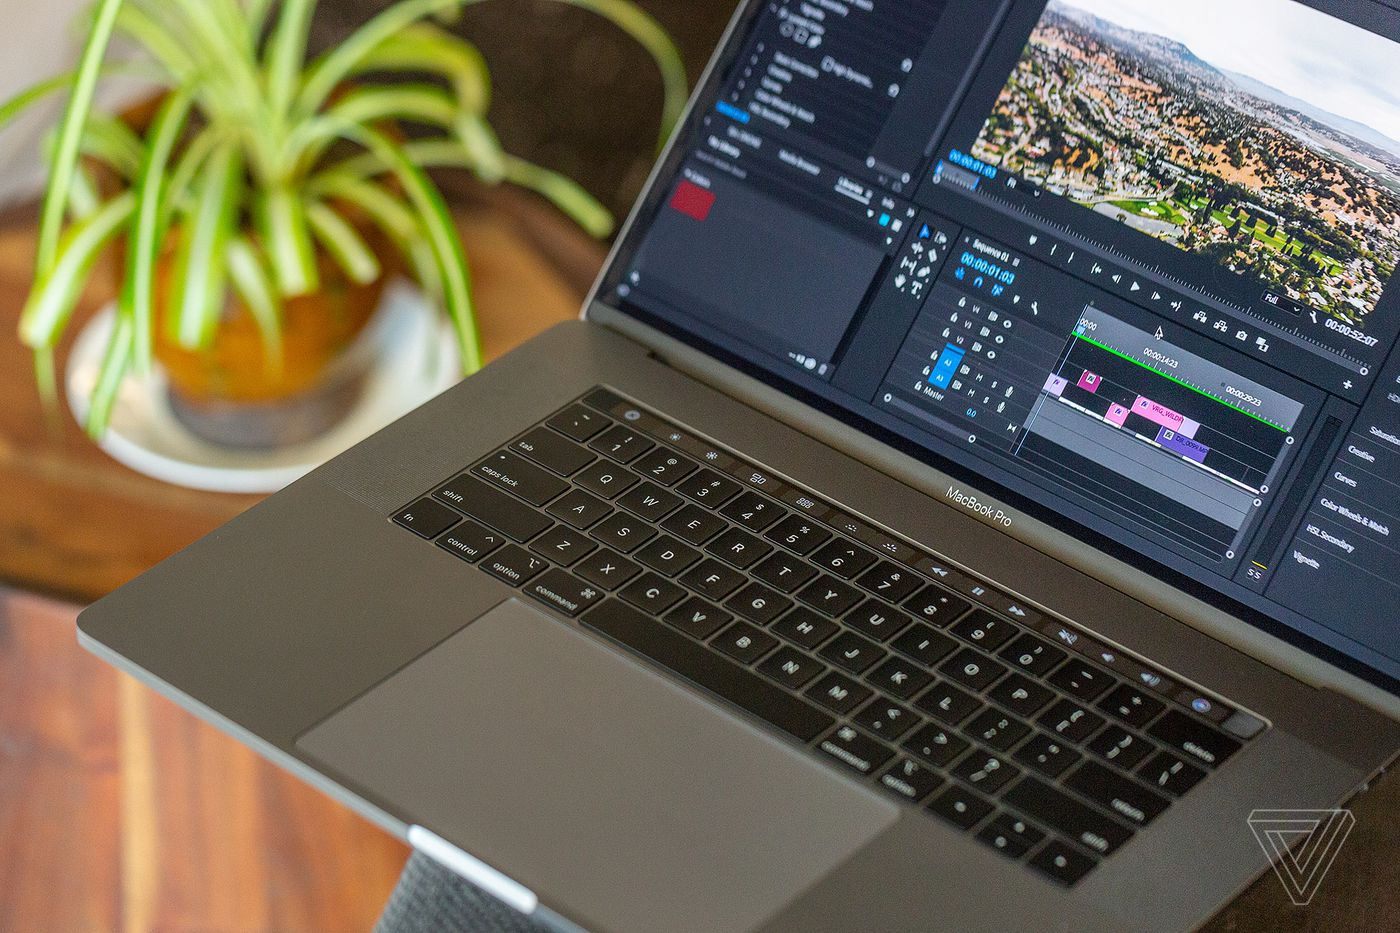 Apple MacBook Pro review (2018, 15-inch): the heat is on